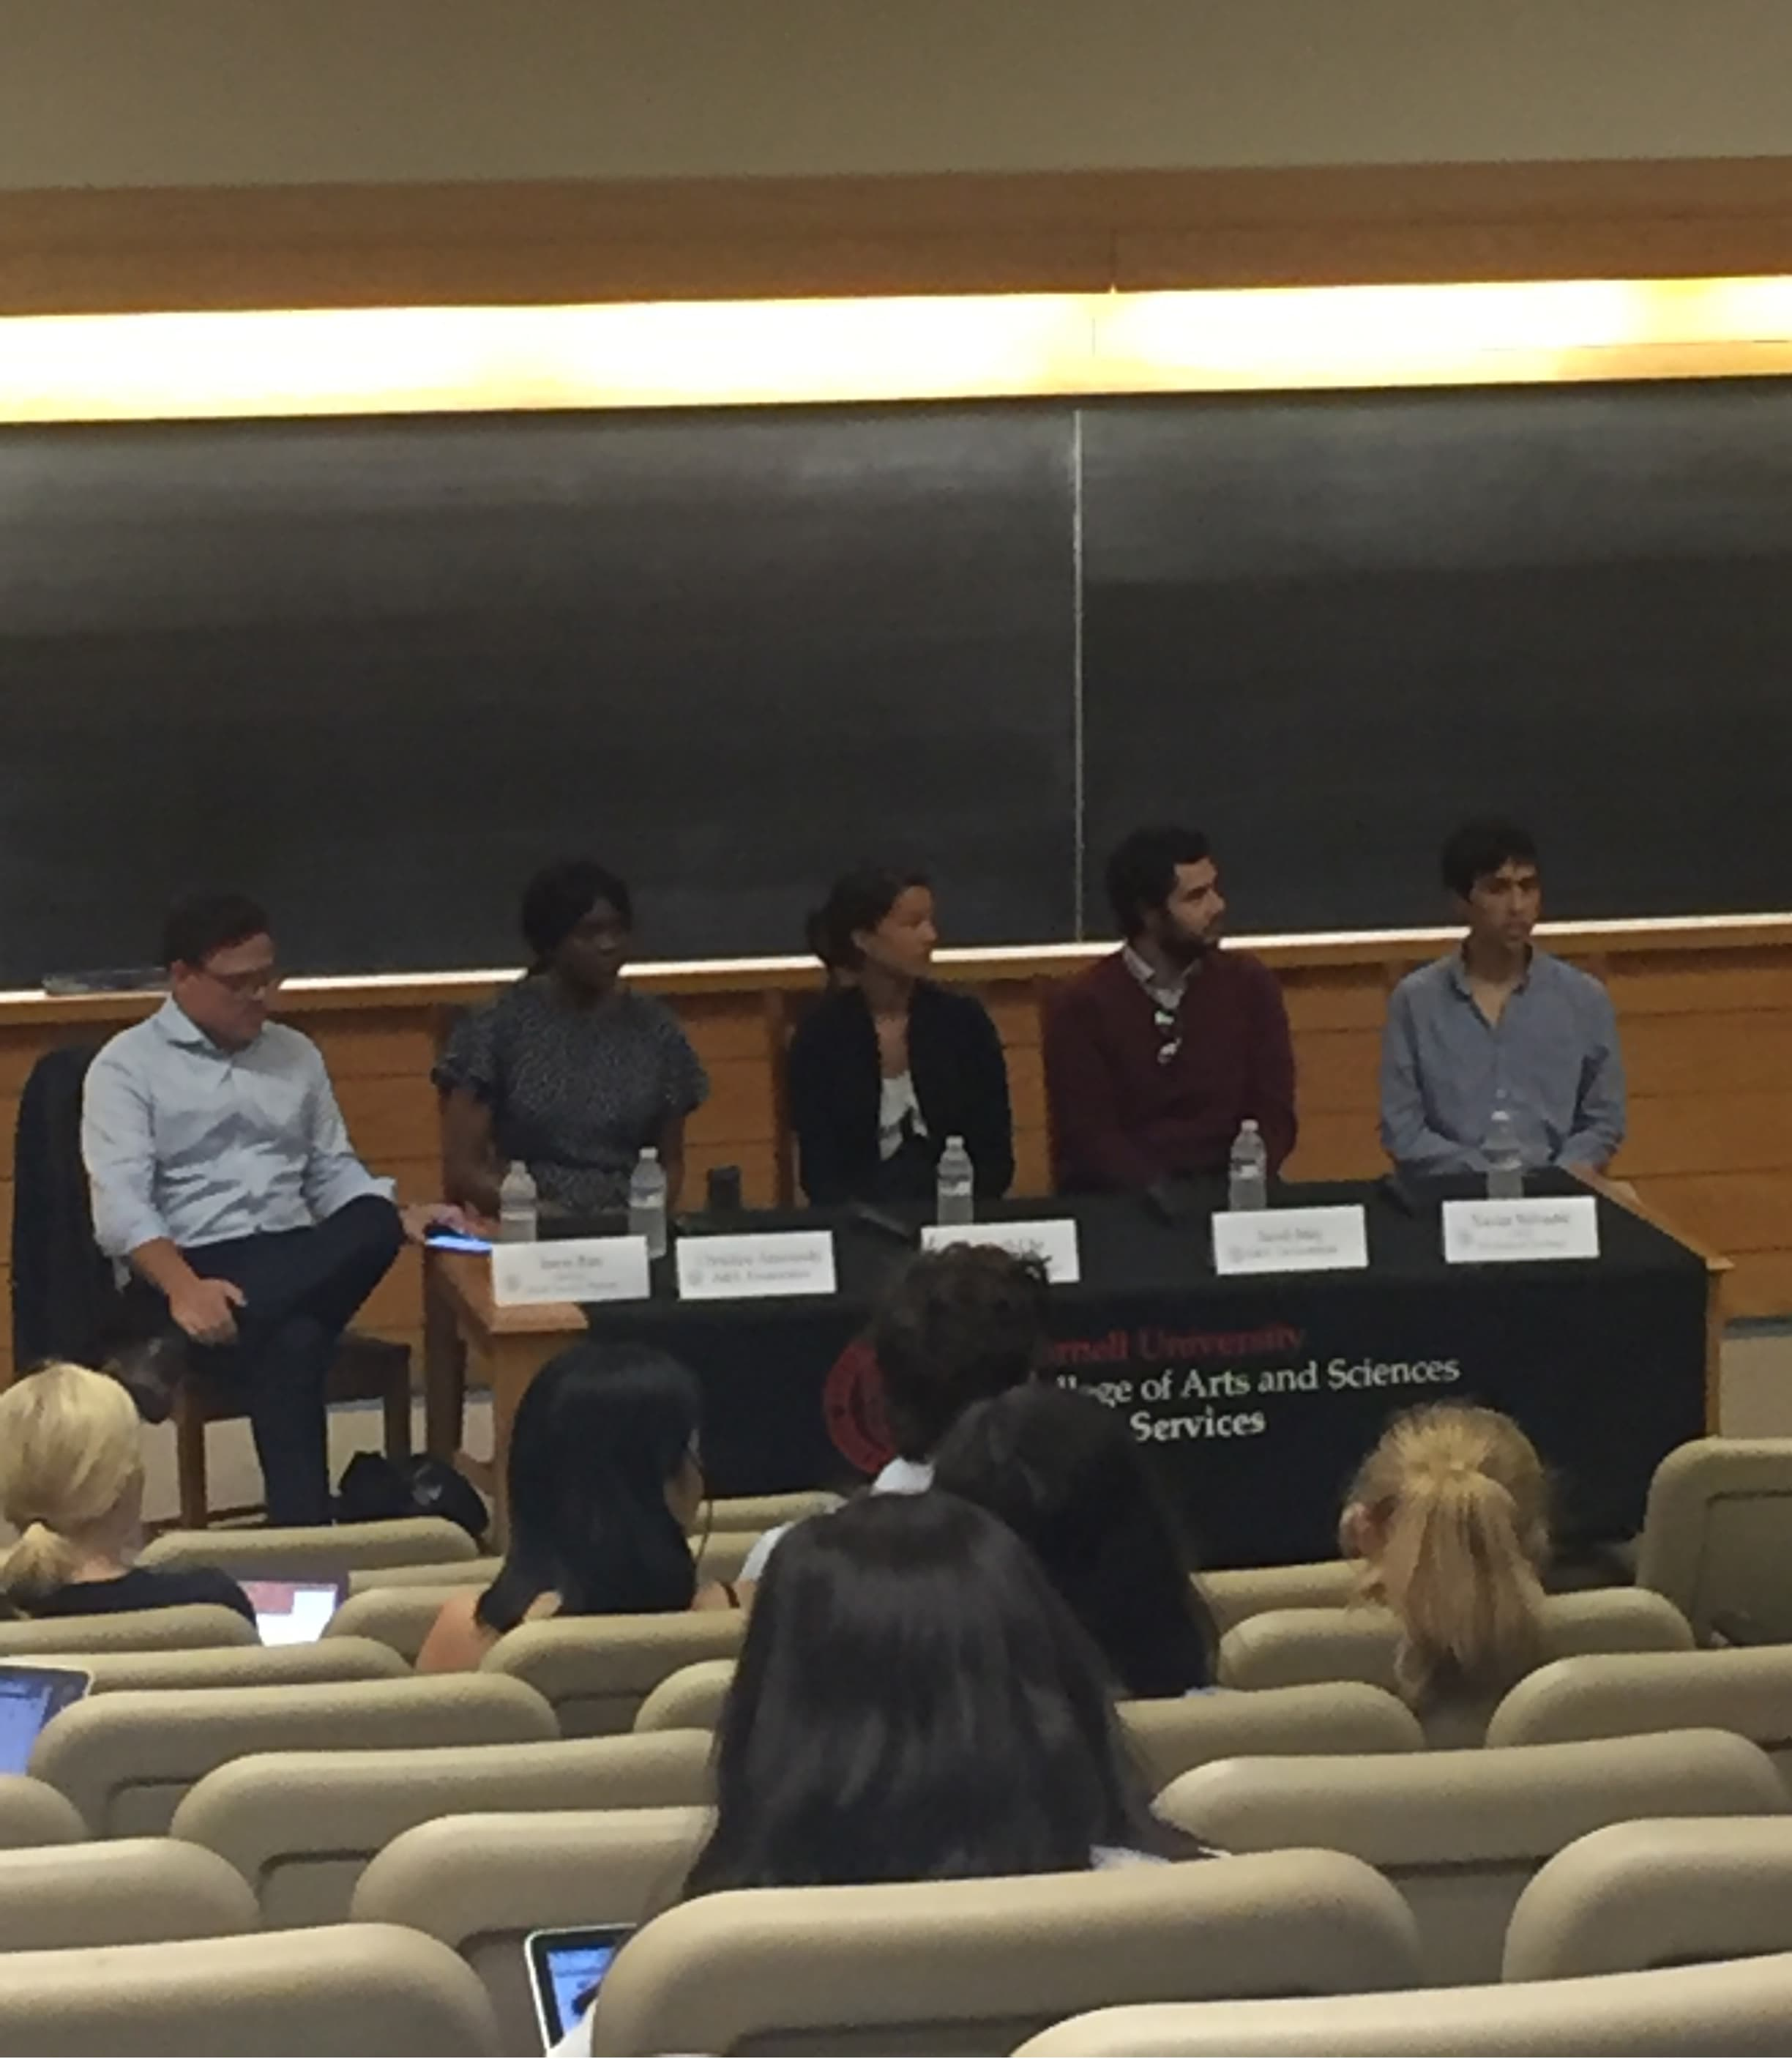 Four student panelists talking about their internship experiences